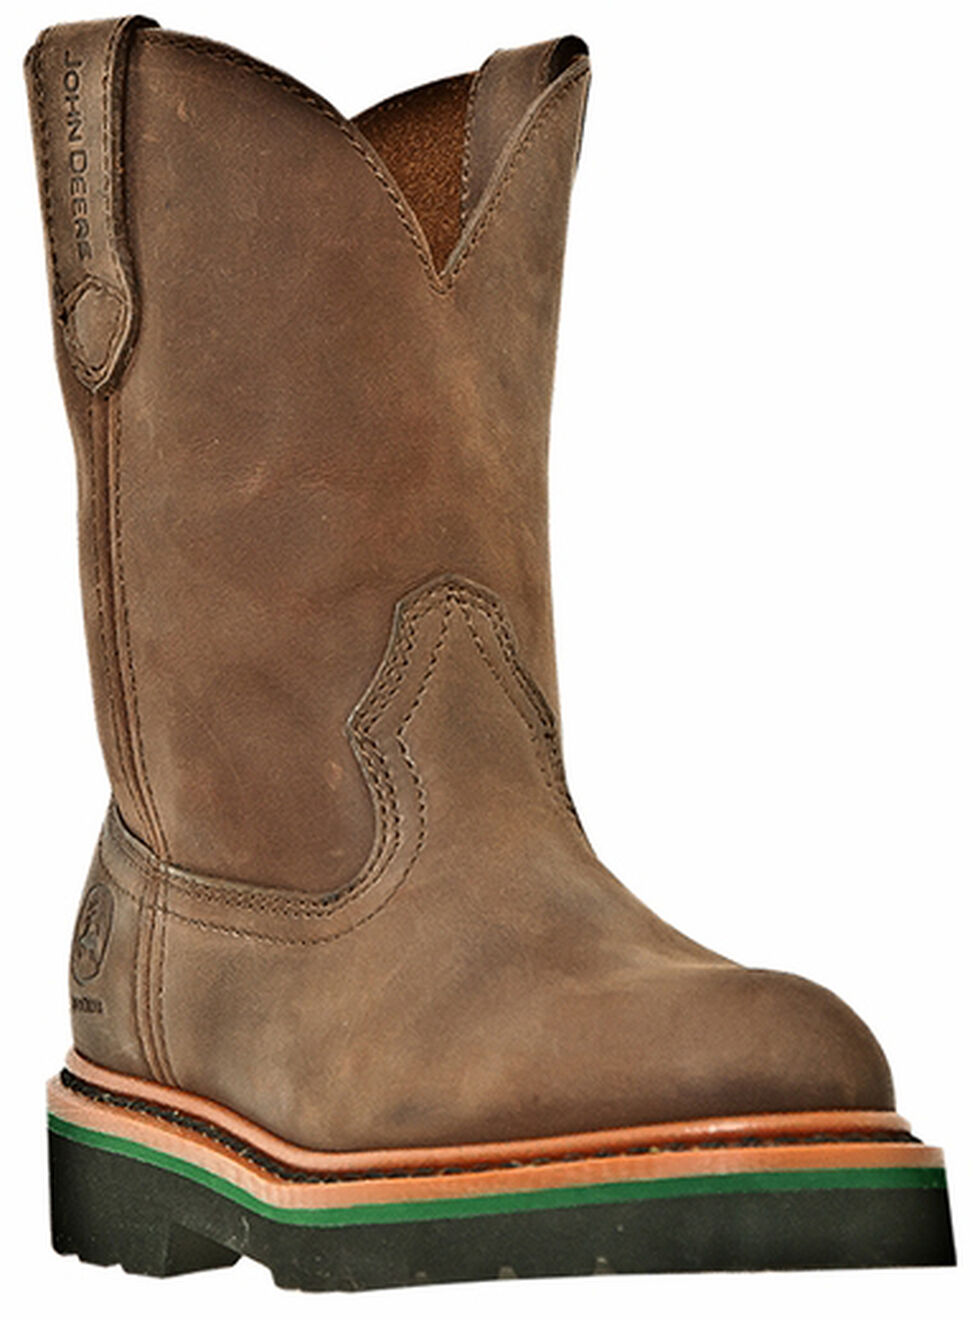 John Deere Boys' Johnny Popper Western Boots - Round Toe, Gaucho, hi-res